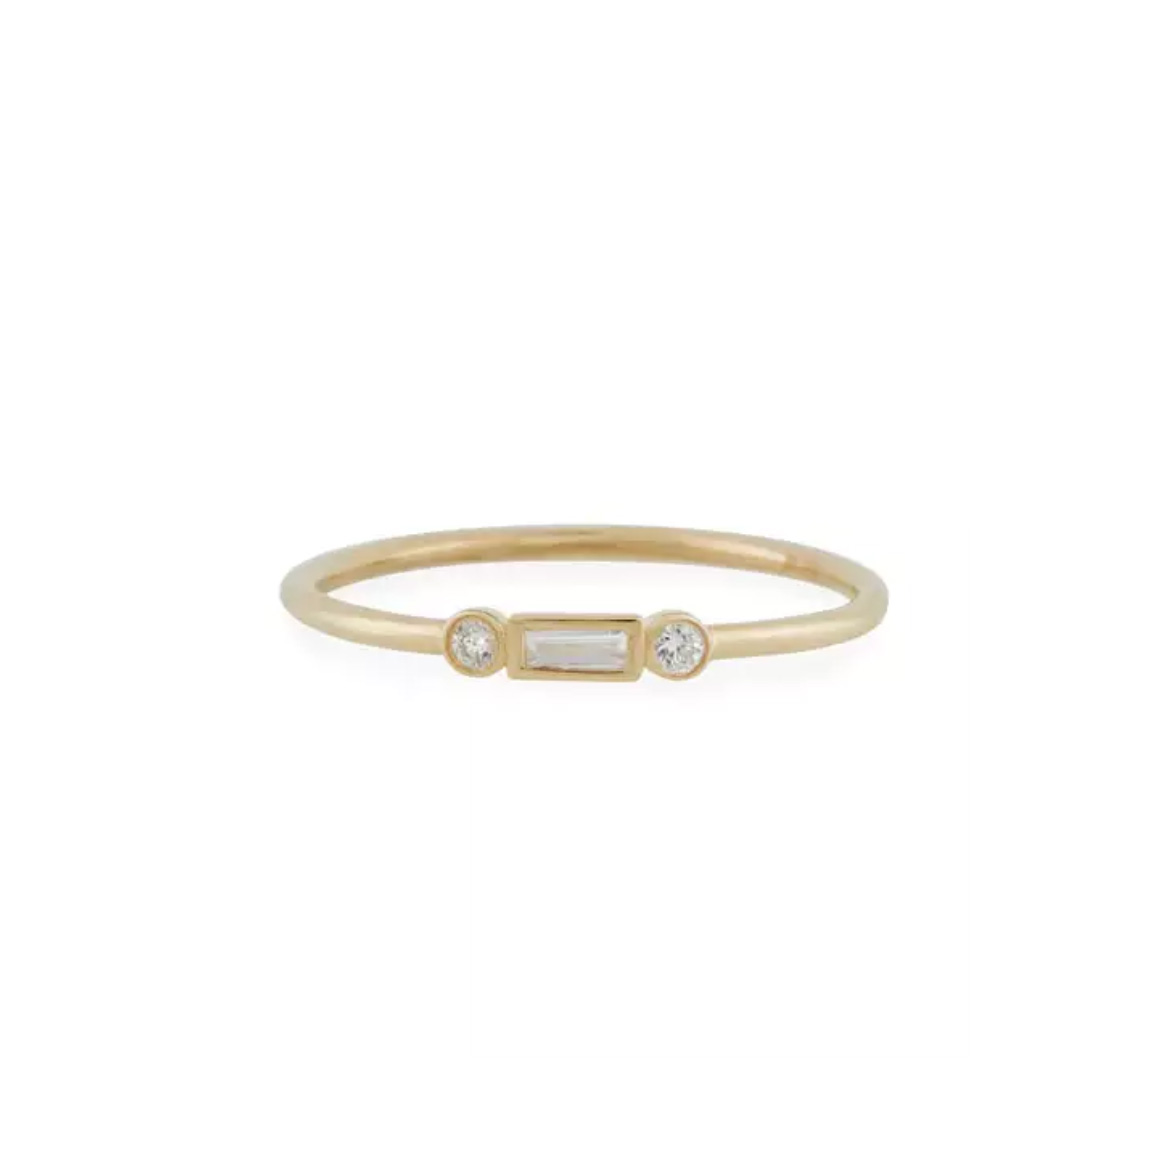 Sydney Evan 14k Baguette Diamond Stacking Ring $475 This Ring Is Subtle  And Stunning Without The Huge Price Tag Plus, It'll Be A Dream To Stack  With Some